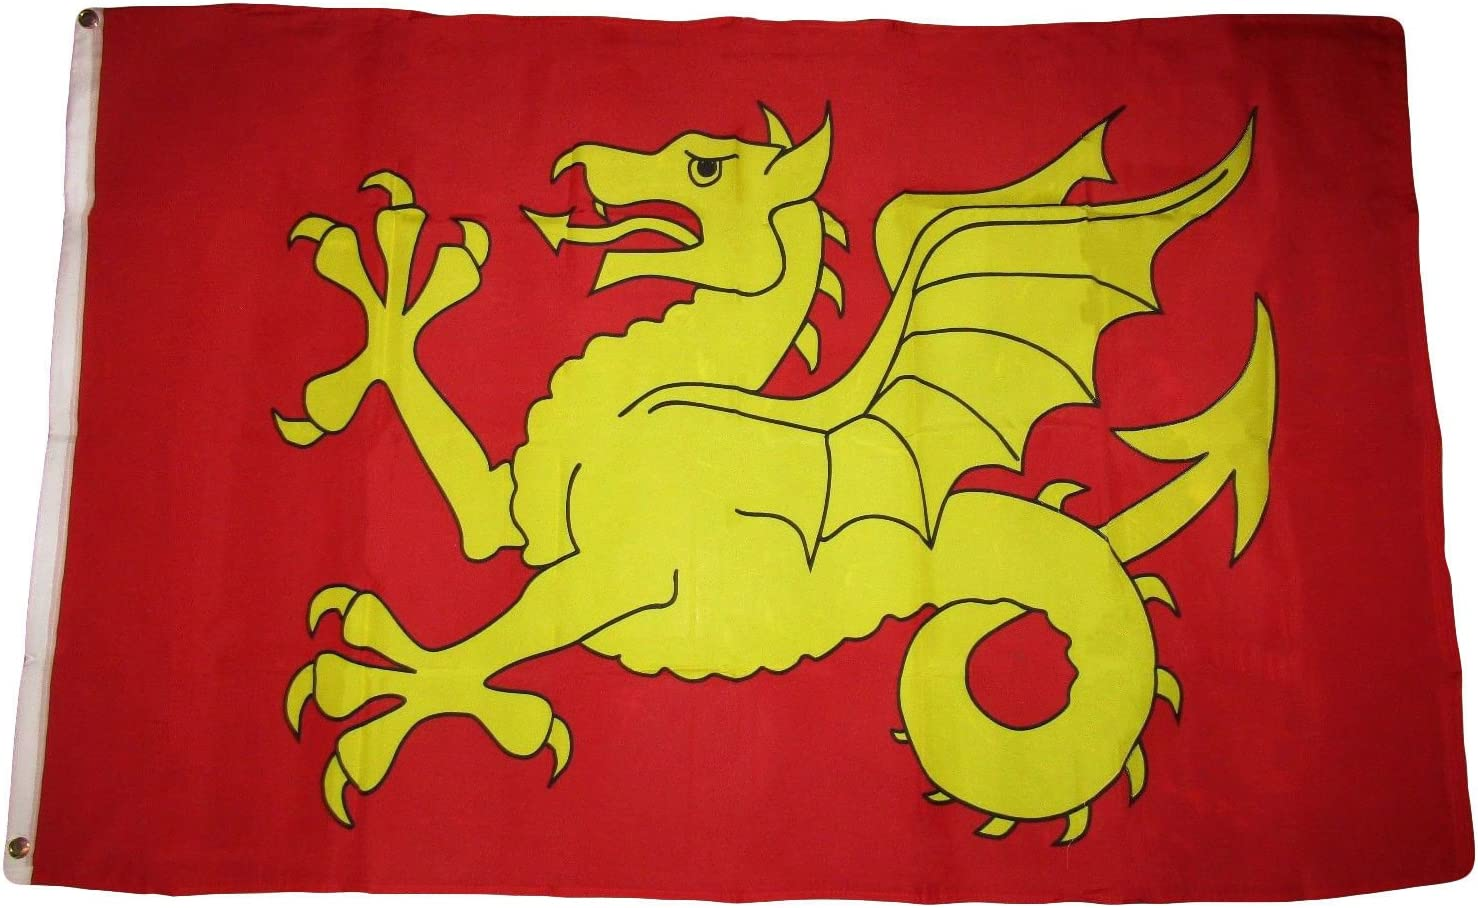 USA American /& Wessex Dragon Flag Banner Details about  /3x5 3'x5' Wholesale Set 2 Pack